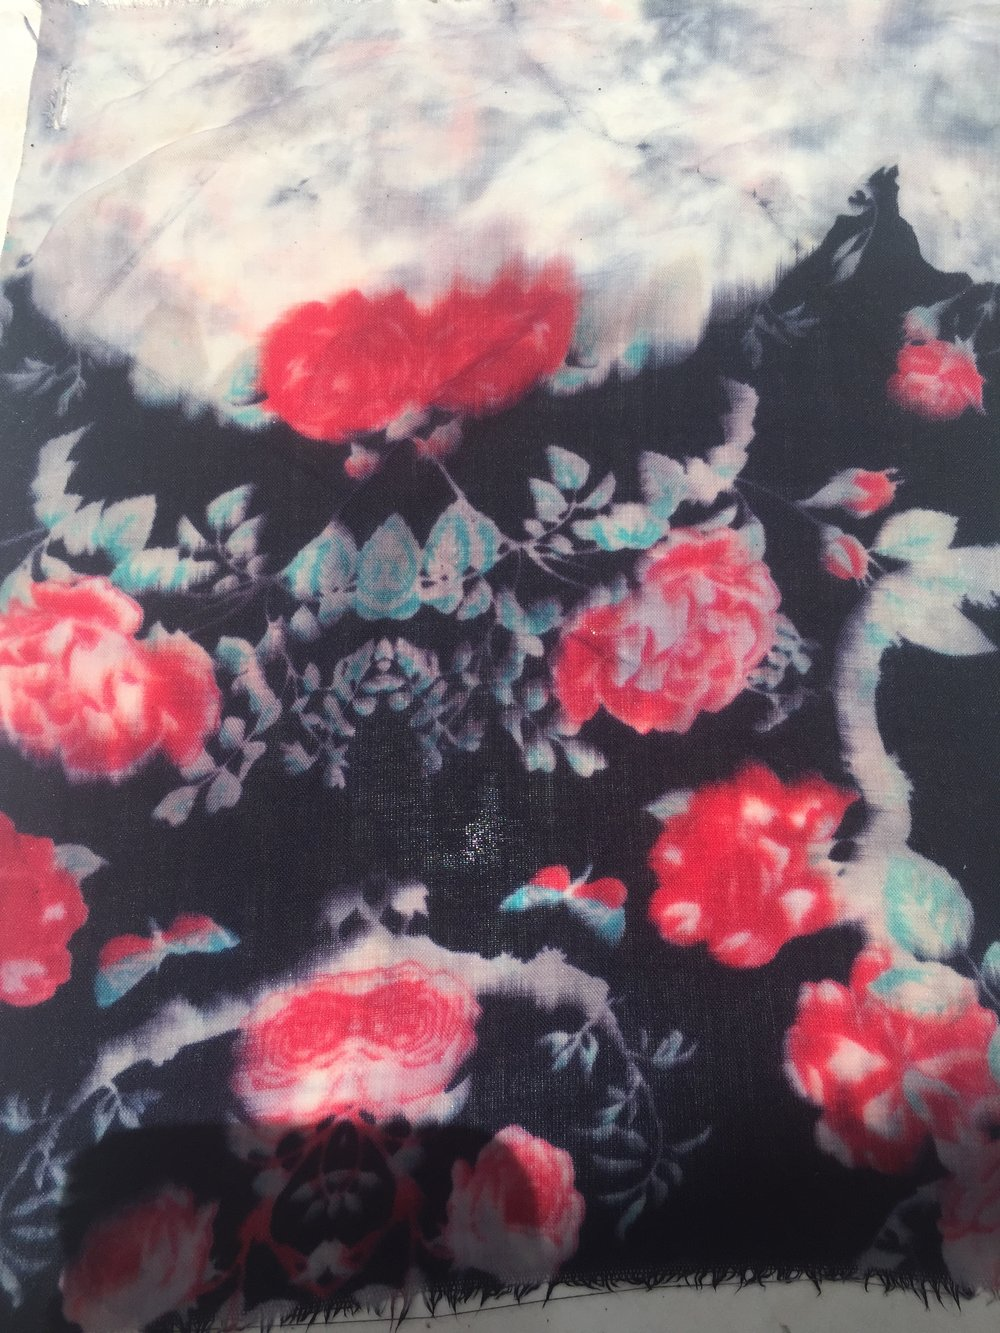 Prepare fabric for Dyeing - Choose organic fabrics whenever possible